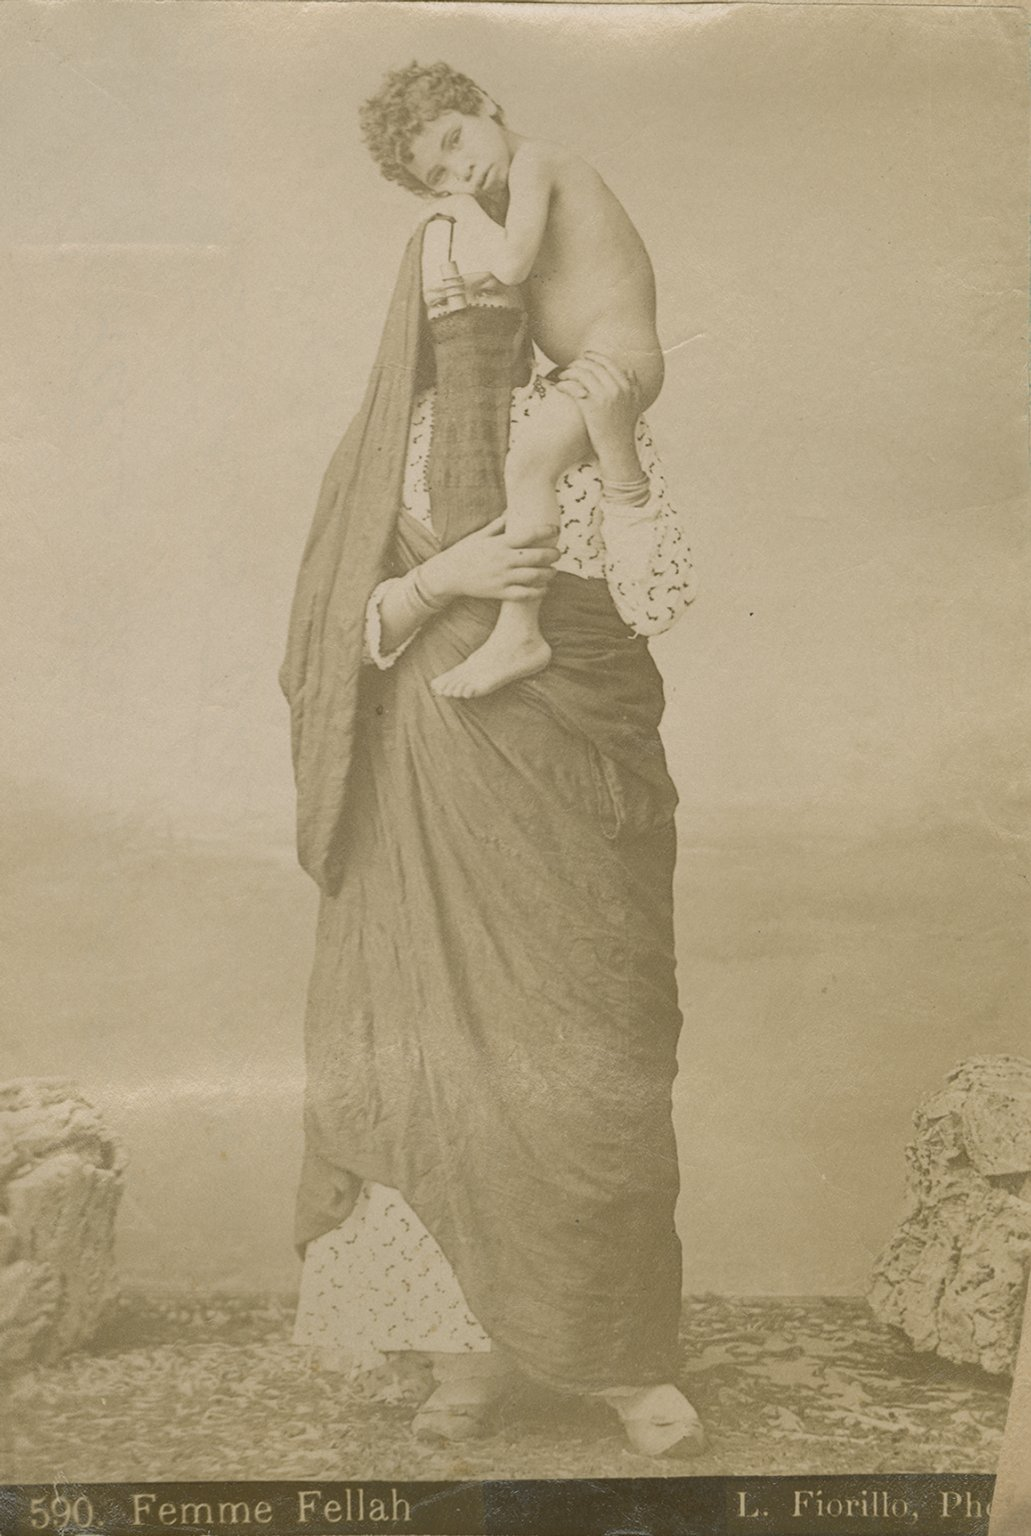 Veiled woman with young boy perched on her shoulder.